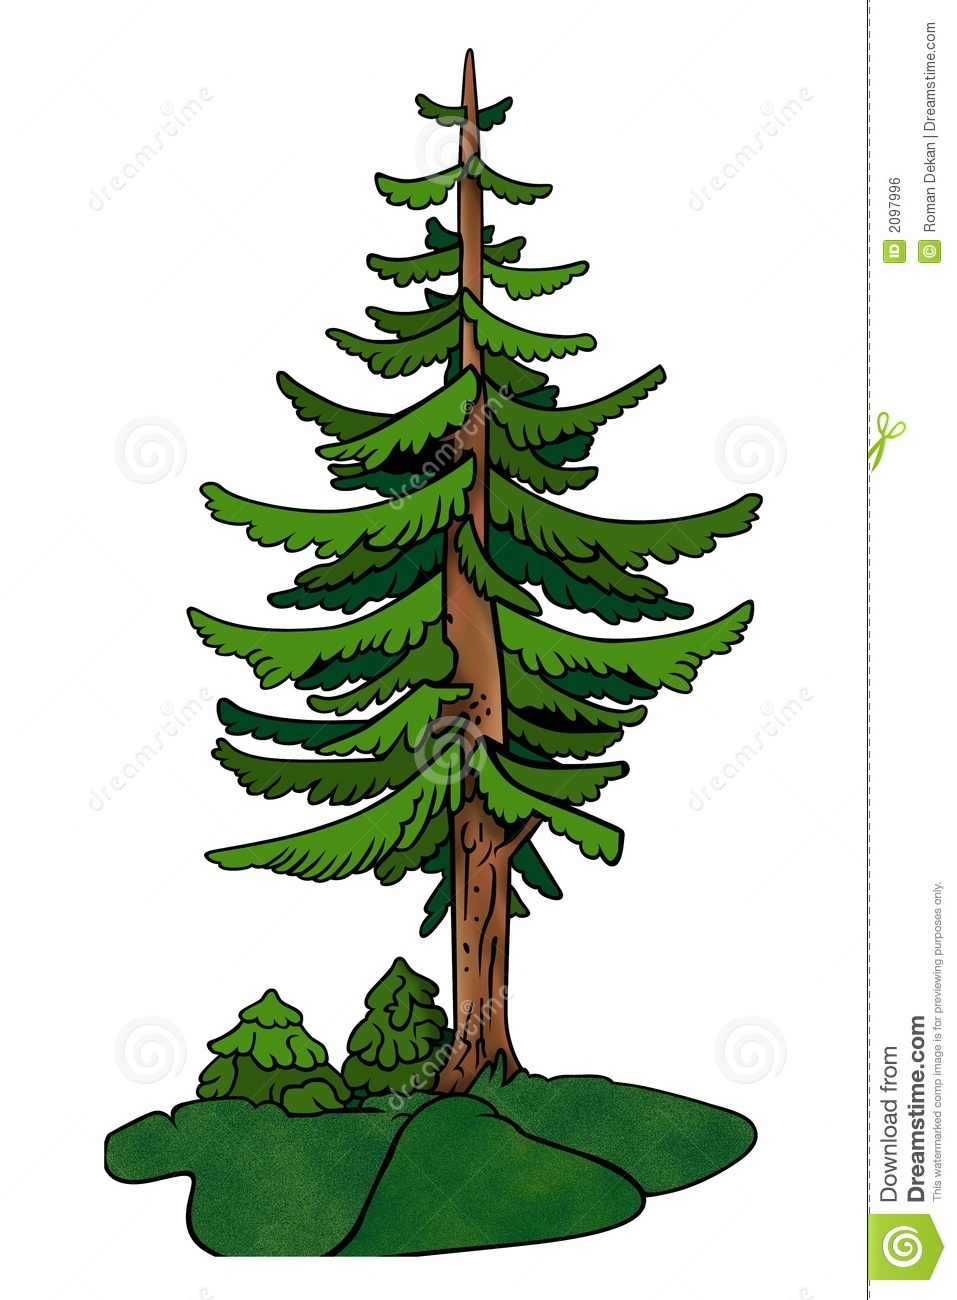 Conifer clipart.